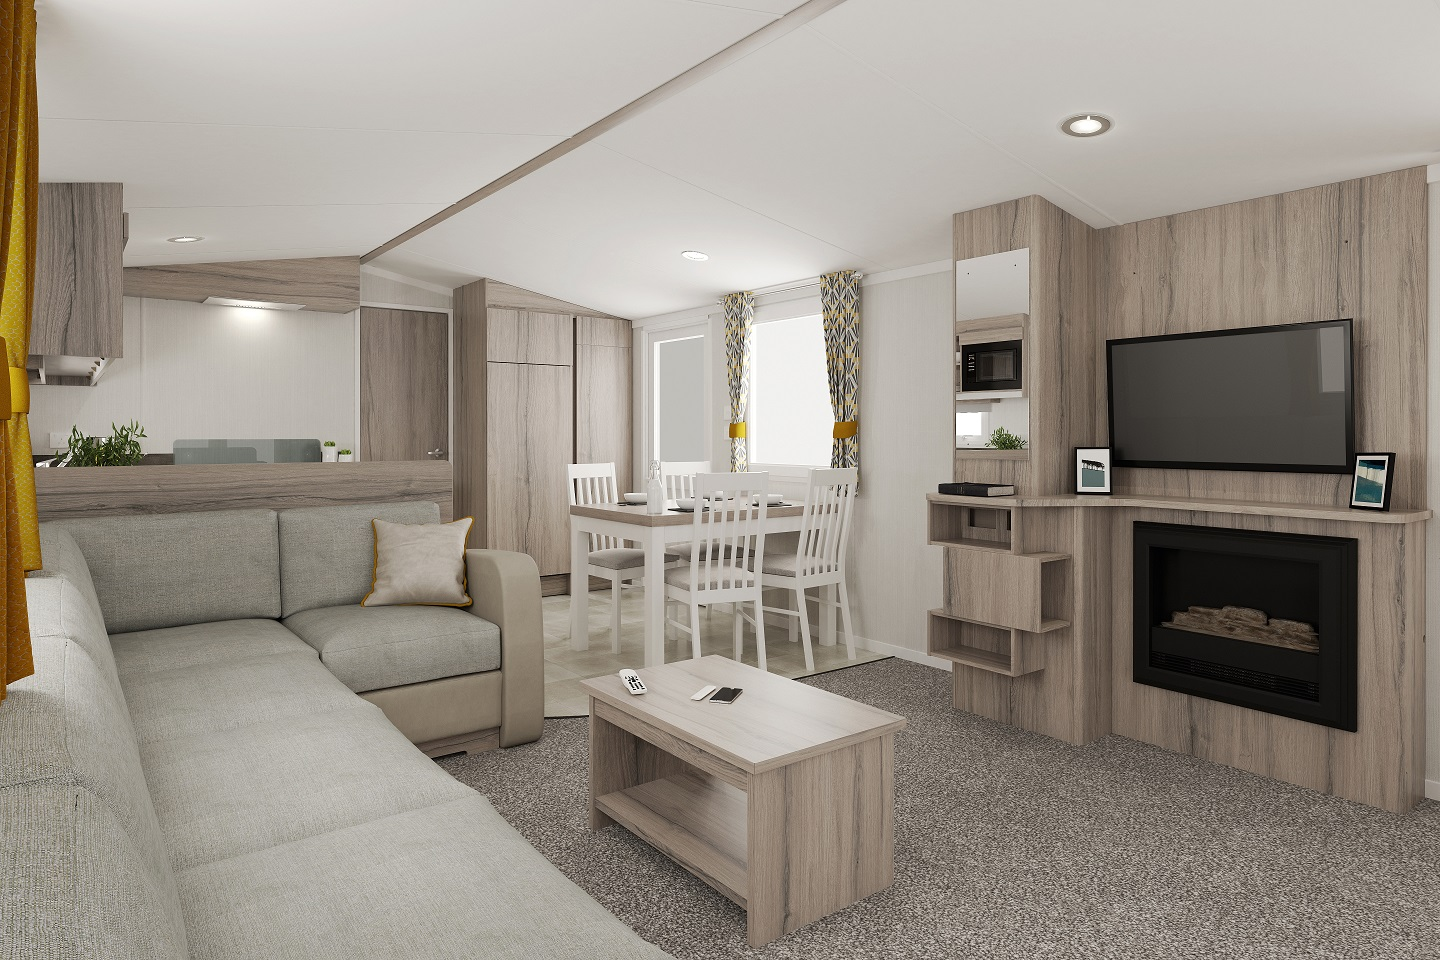 Swift Ardennes: New Static Caravans and Holiday Homes for Sale, On Order Large Image 2